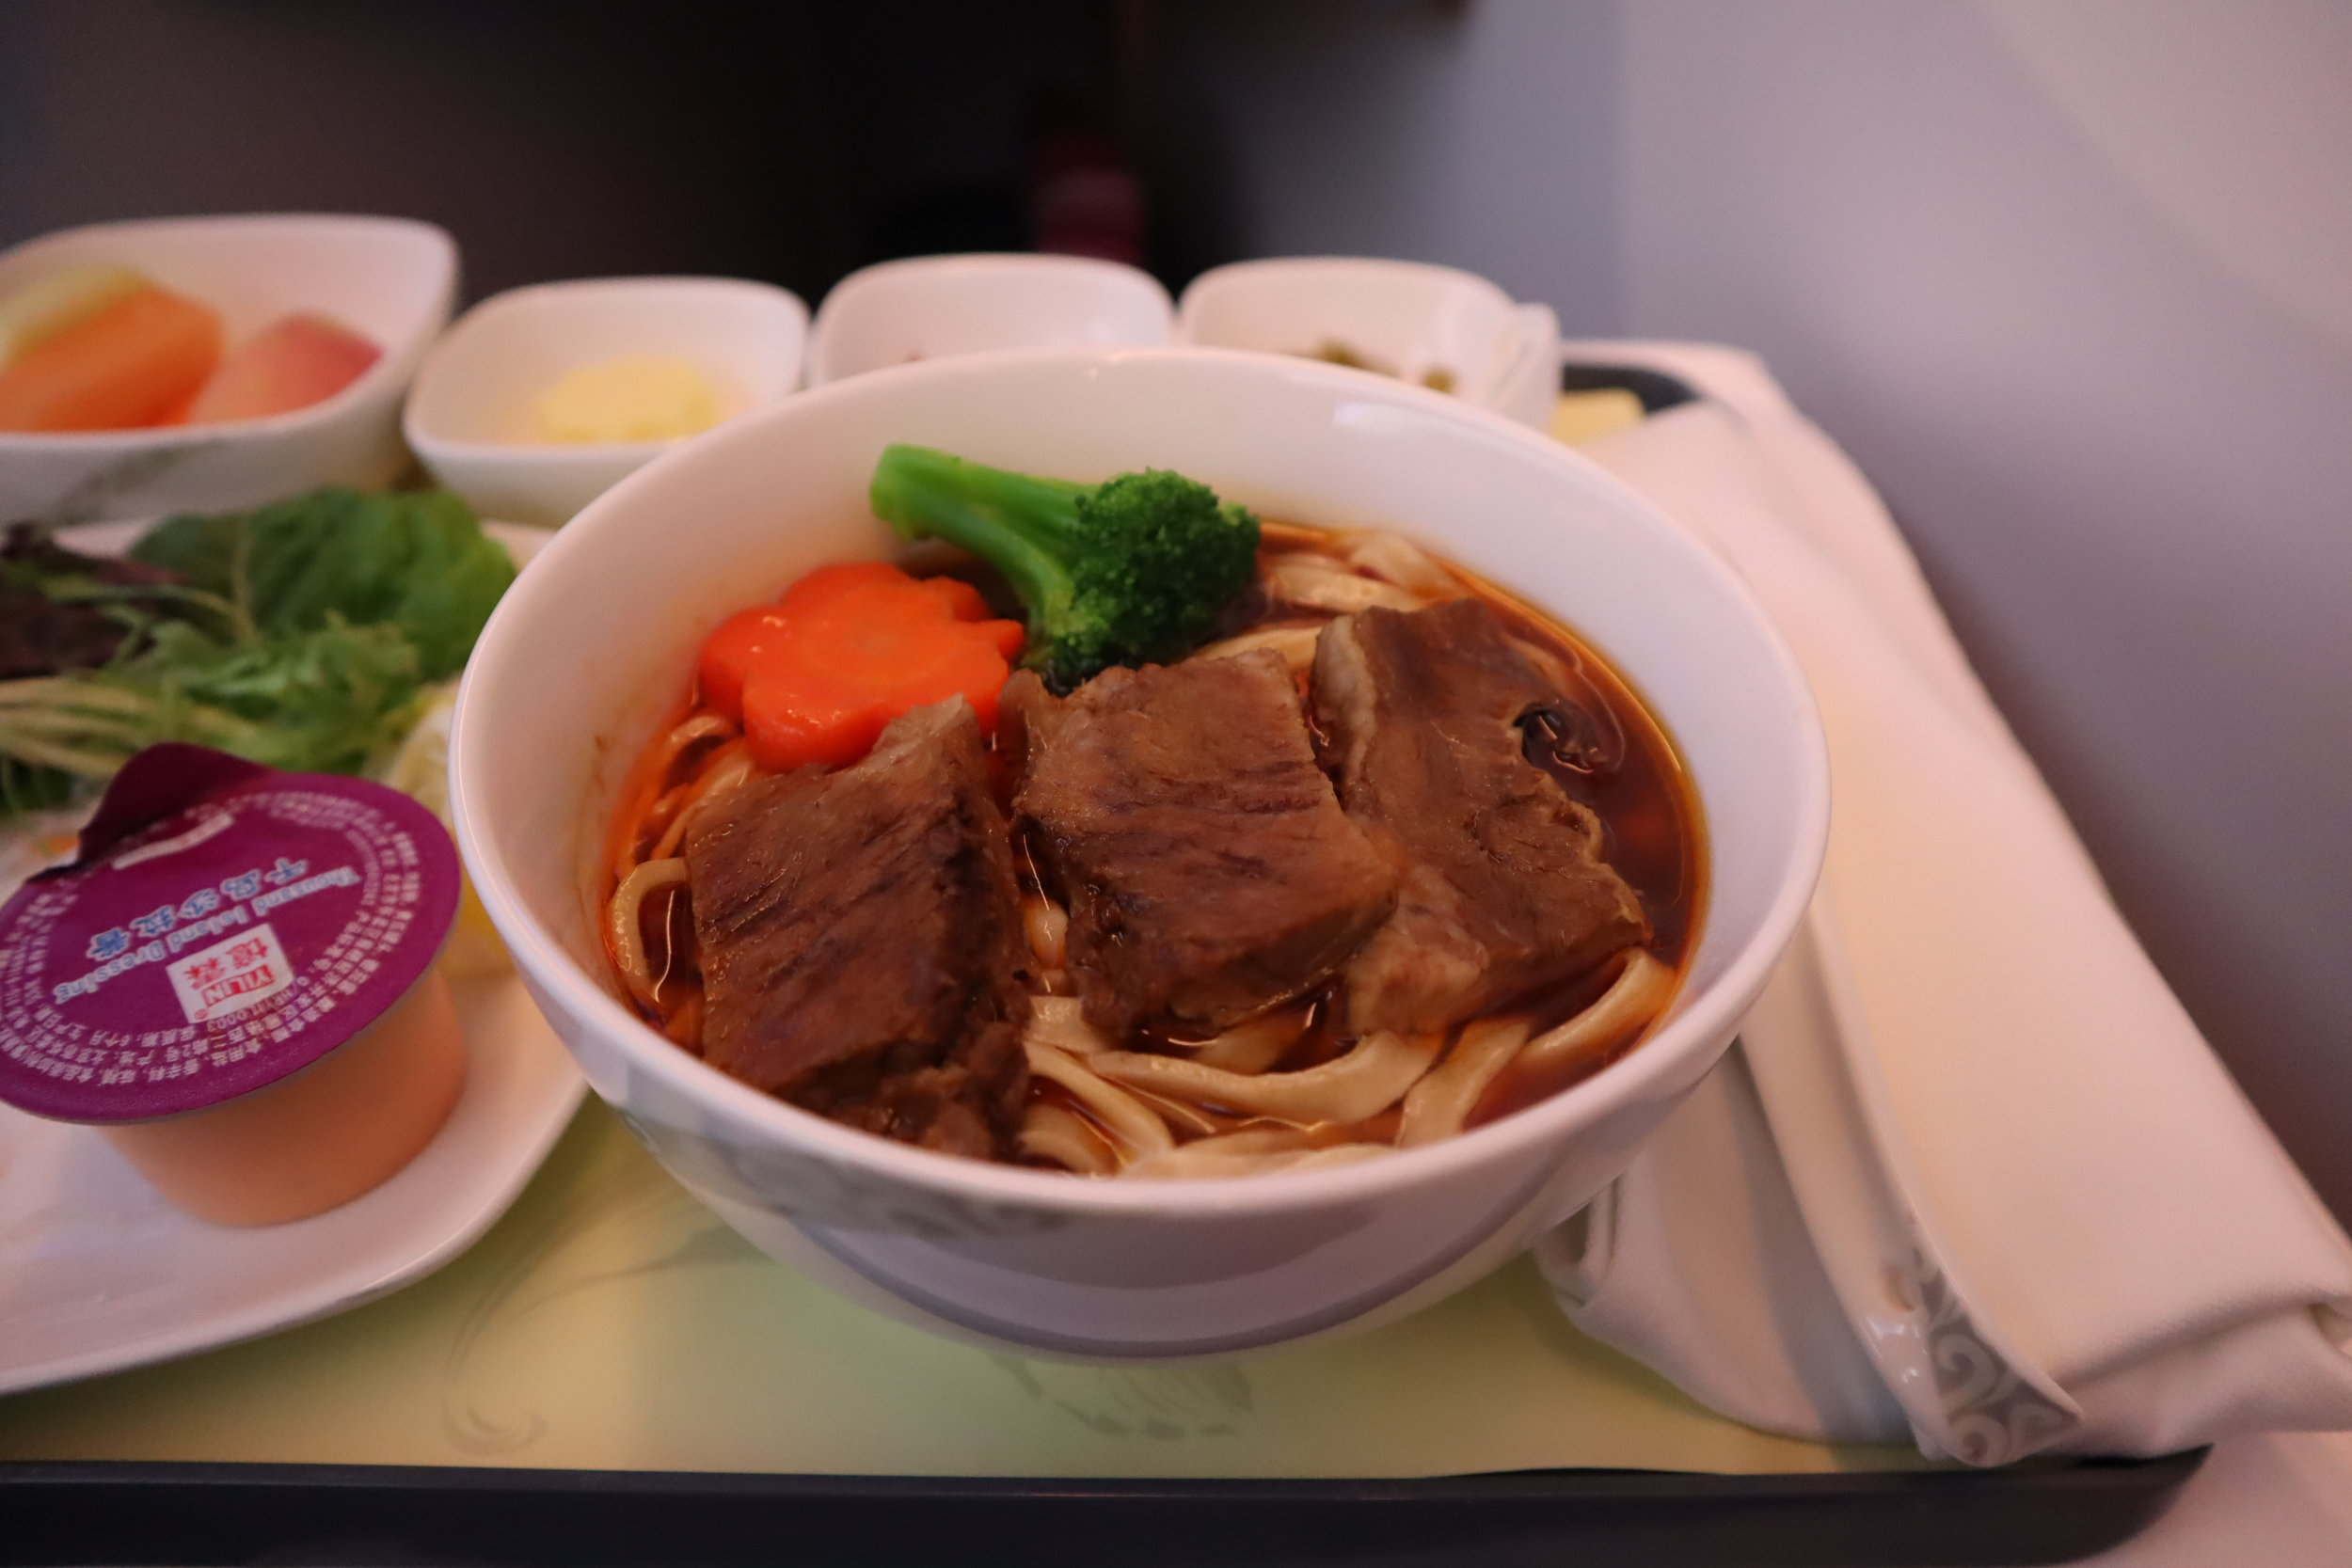 Air China business class – Beef noodles